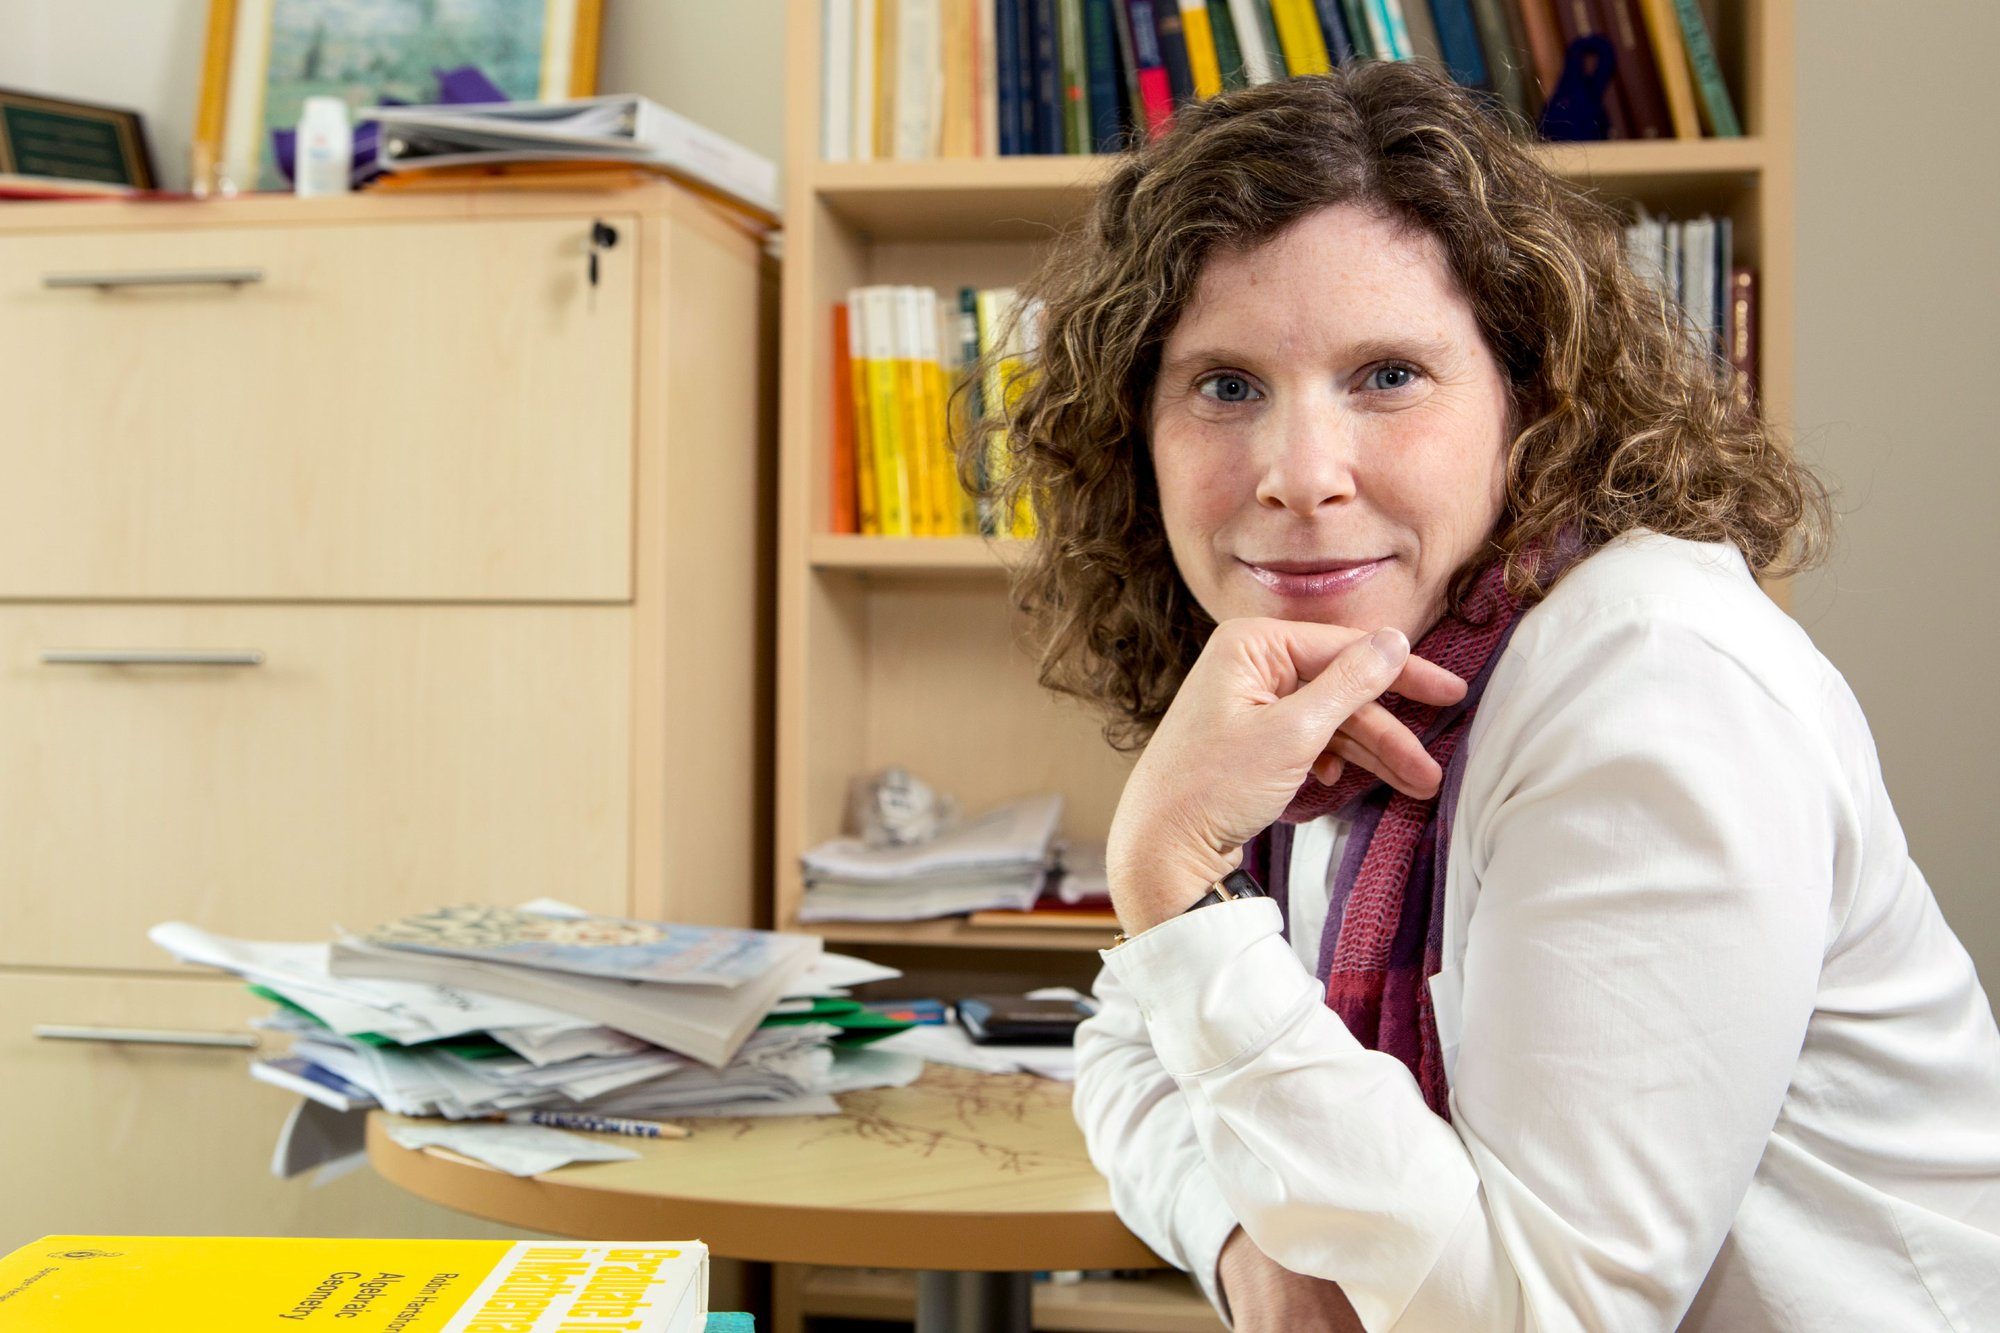 a woman posing for a portrait from an office